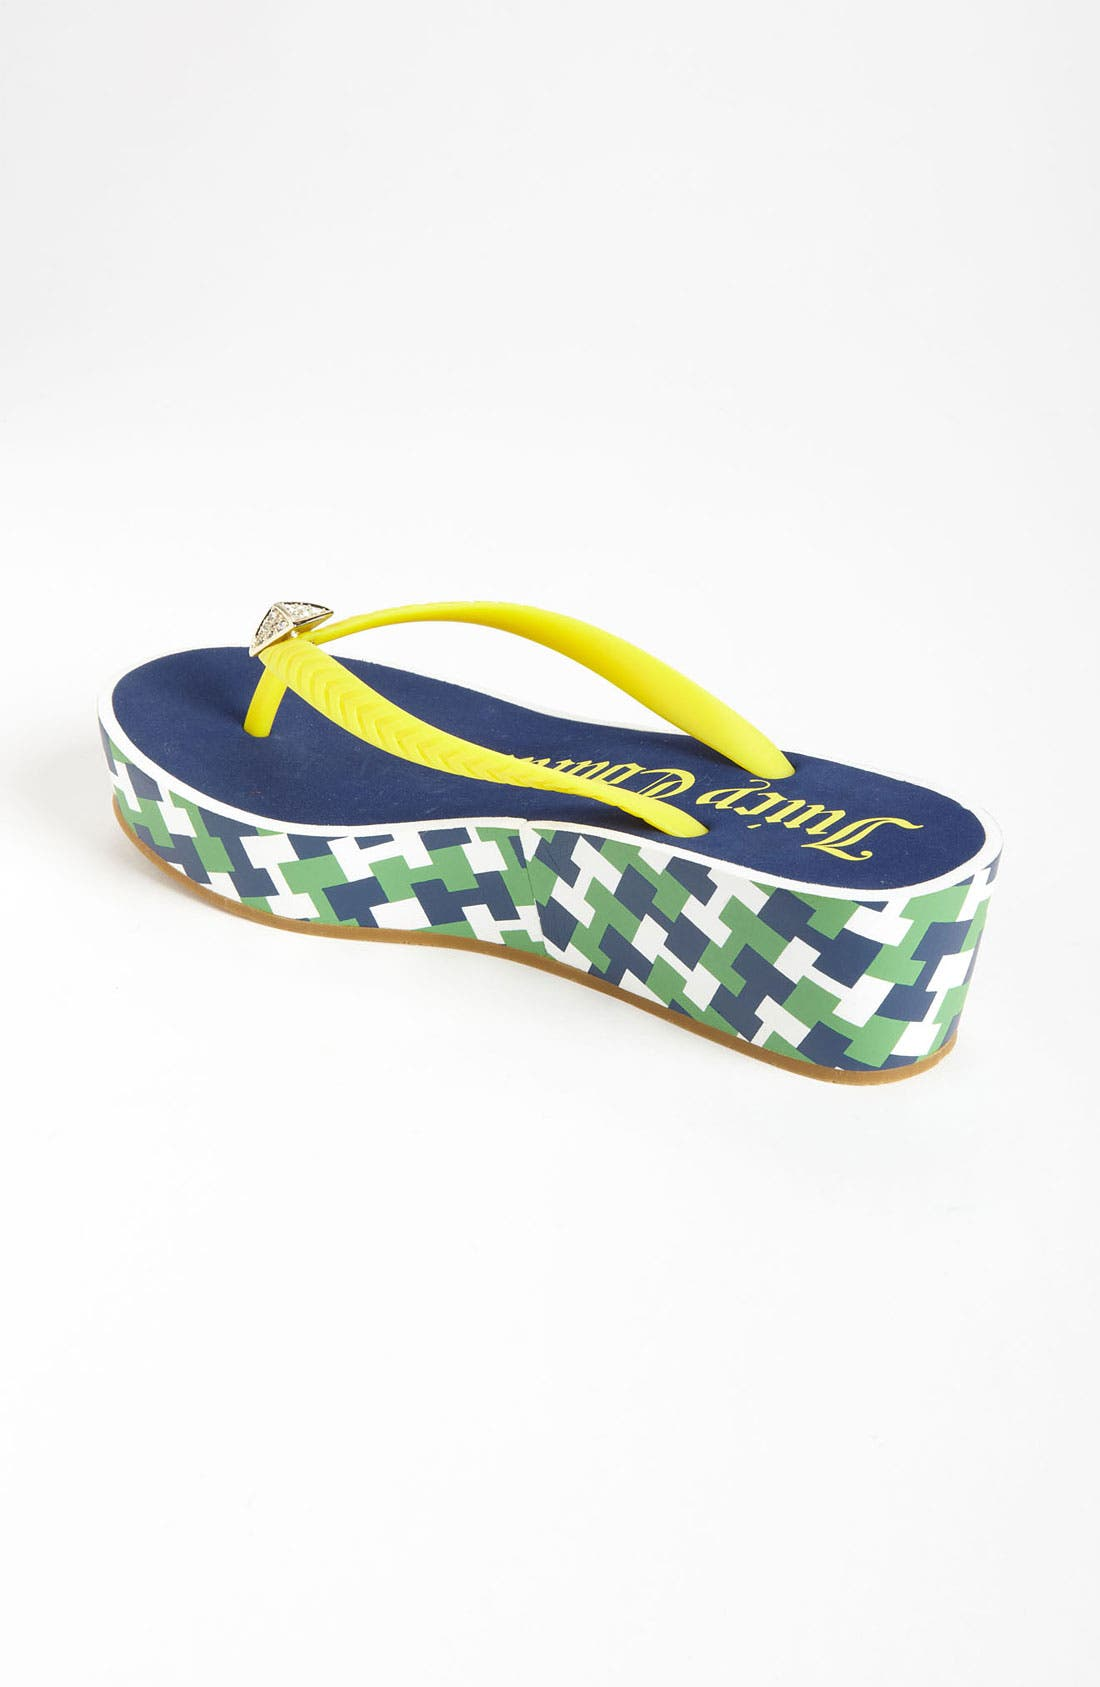 Alternate Image 2  - Juicy Couture 'Irie' Flip Flop